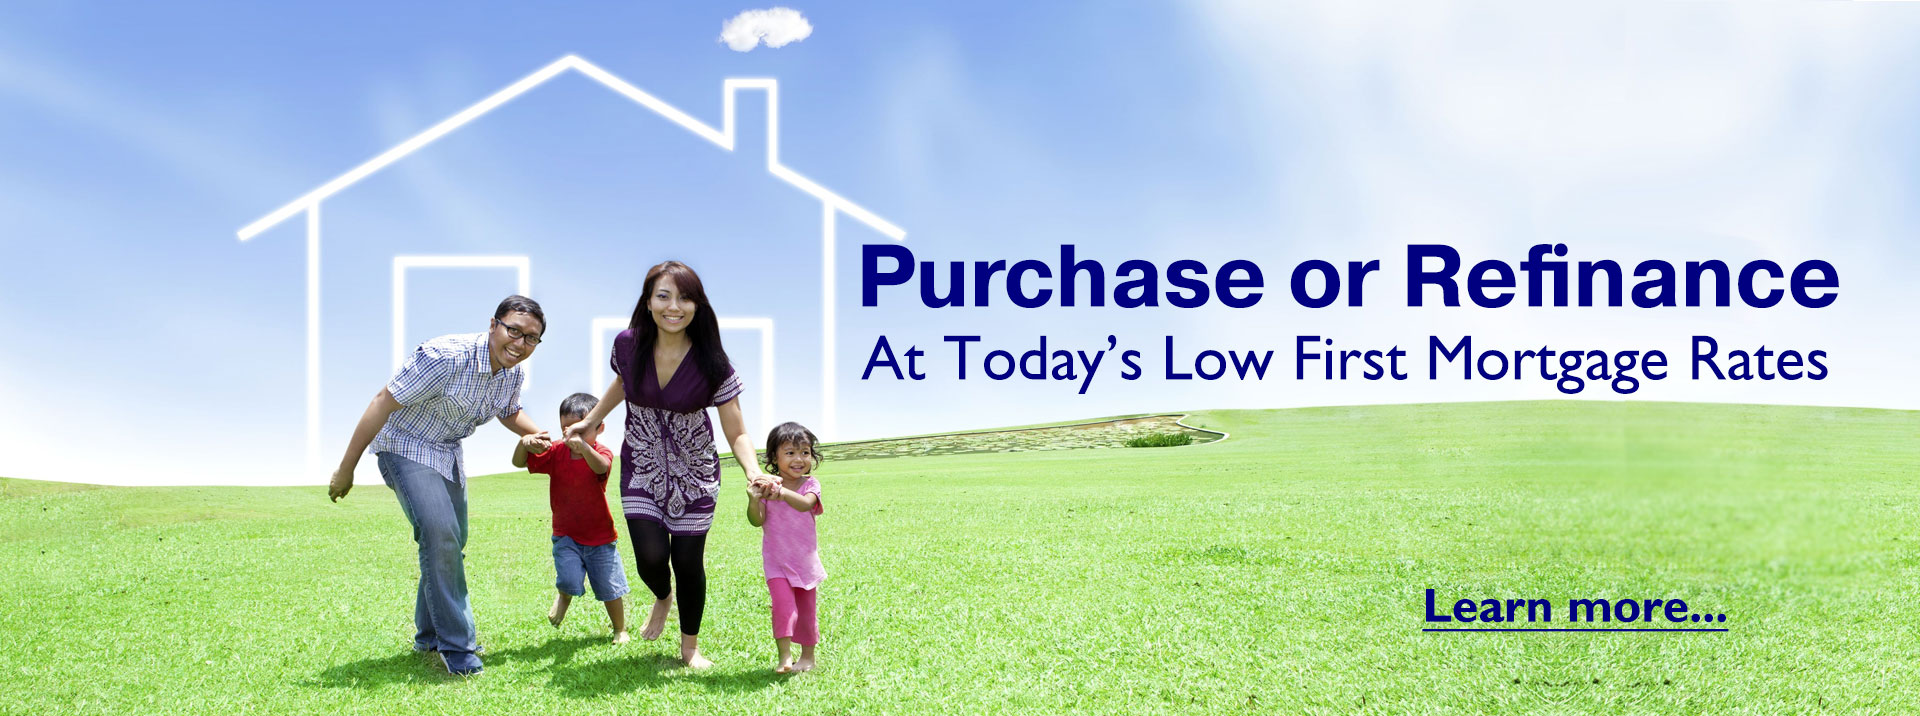 Purchase or refinance at today's low rates